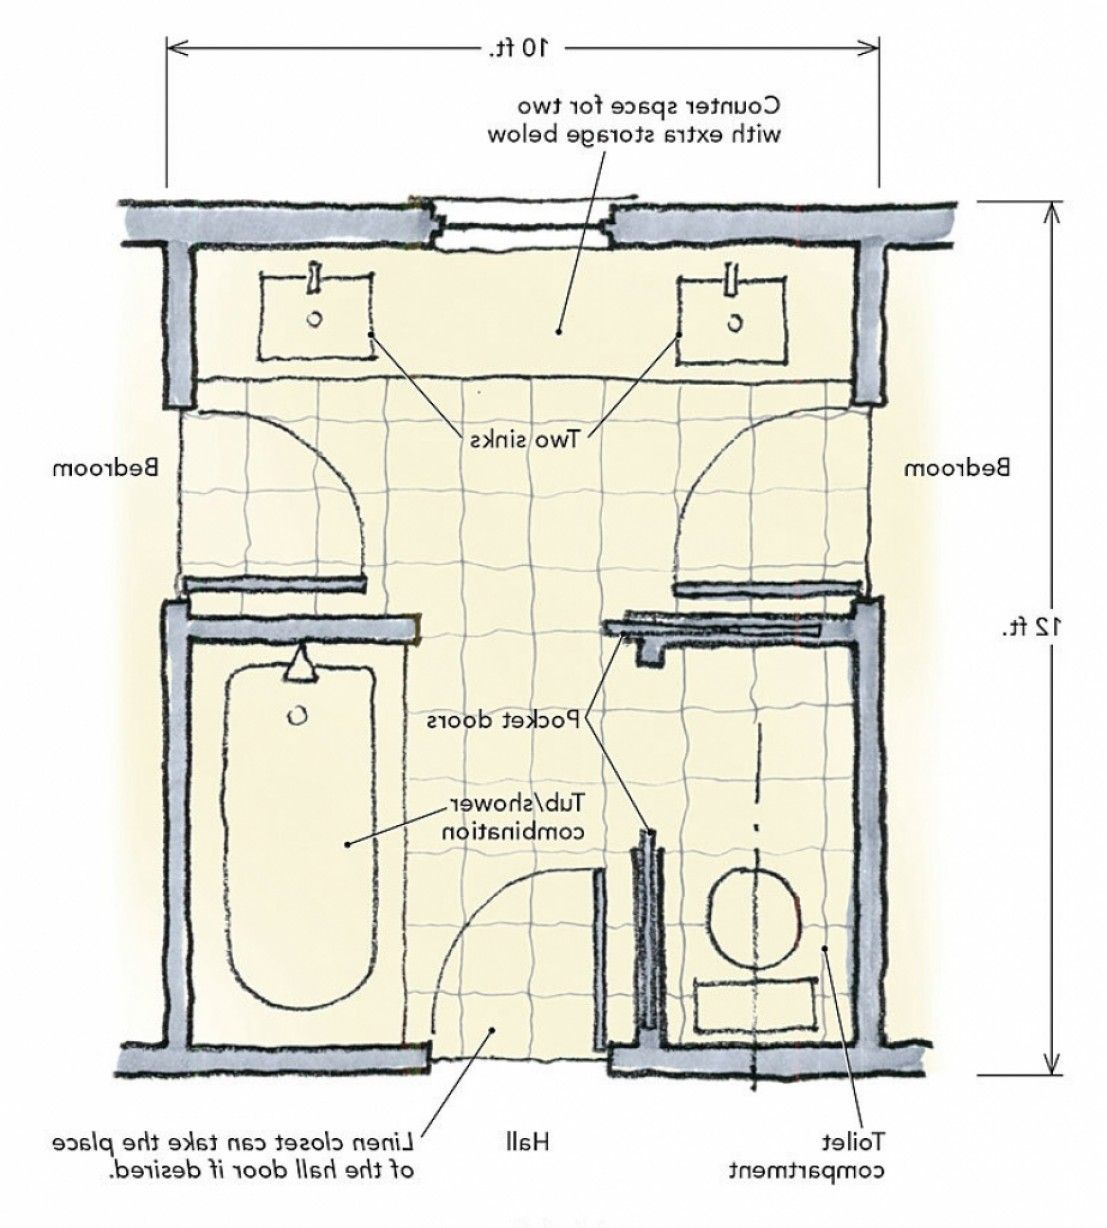 jack and jill bathroom plans jack and jill bathroom designs jack jill bathroom layout bathroom design ideas best ideas - Jack And Jill Bathroom Plans